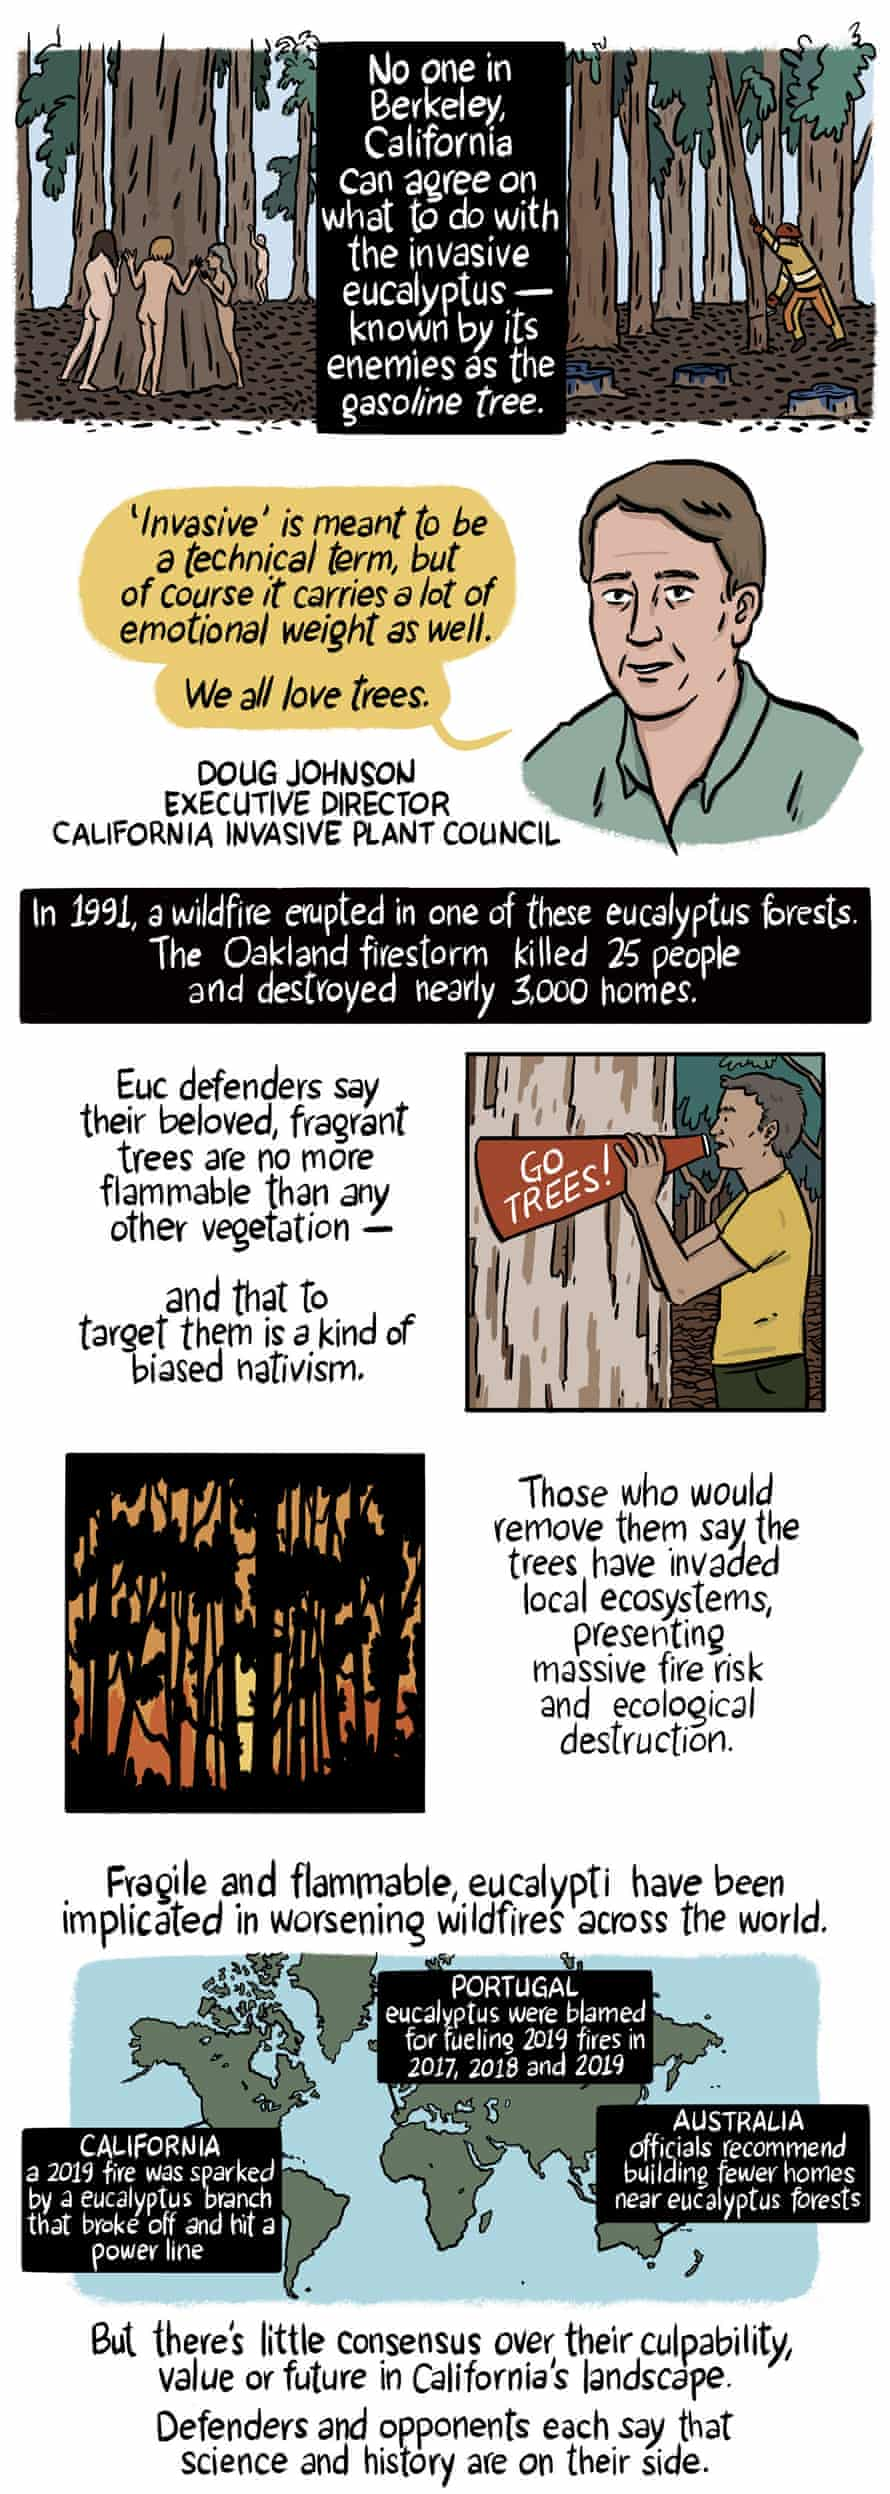 No one in Berkeley, California can agree on what to do with the invasive eucalyptus.